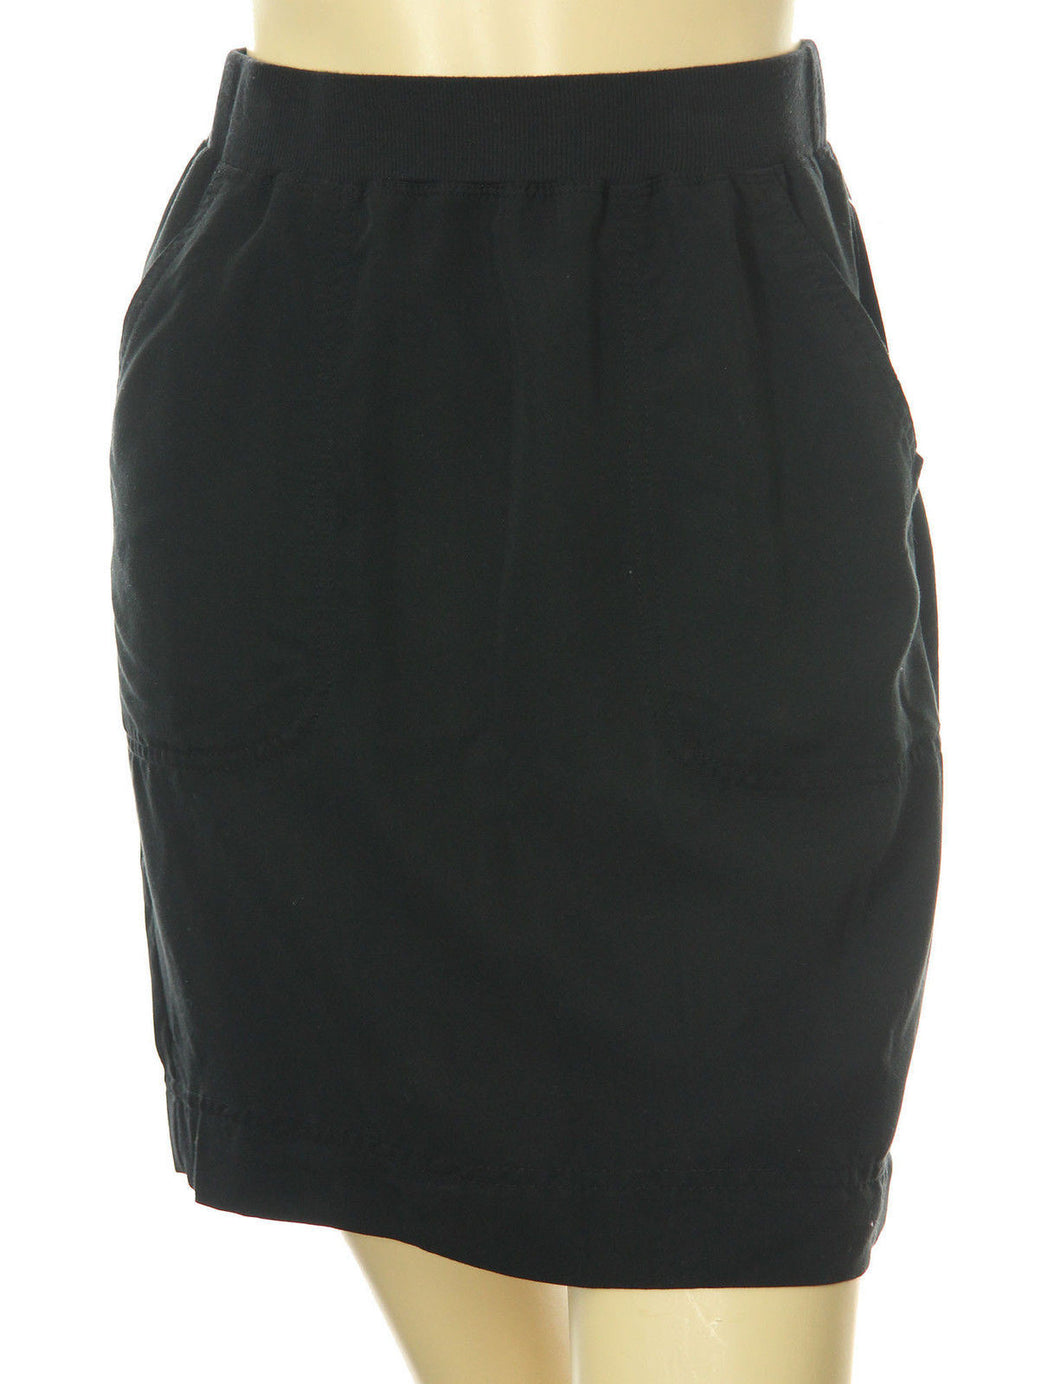 Studio M Black Elastic Waist Pull On Twill Skirt